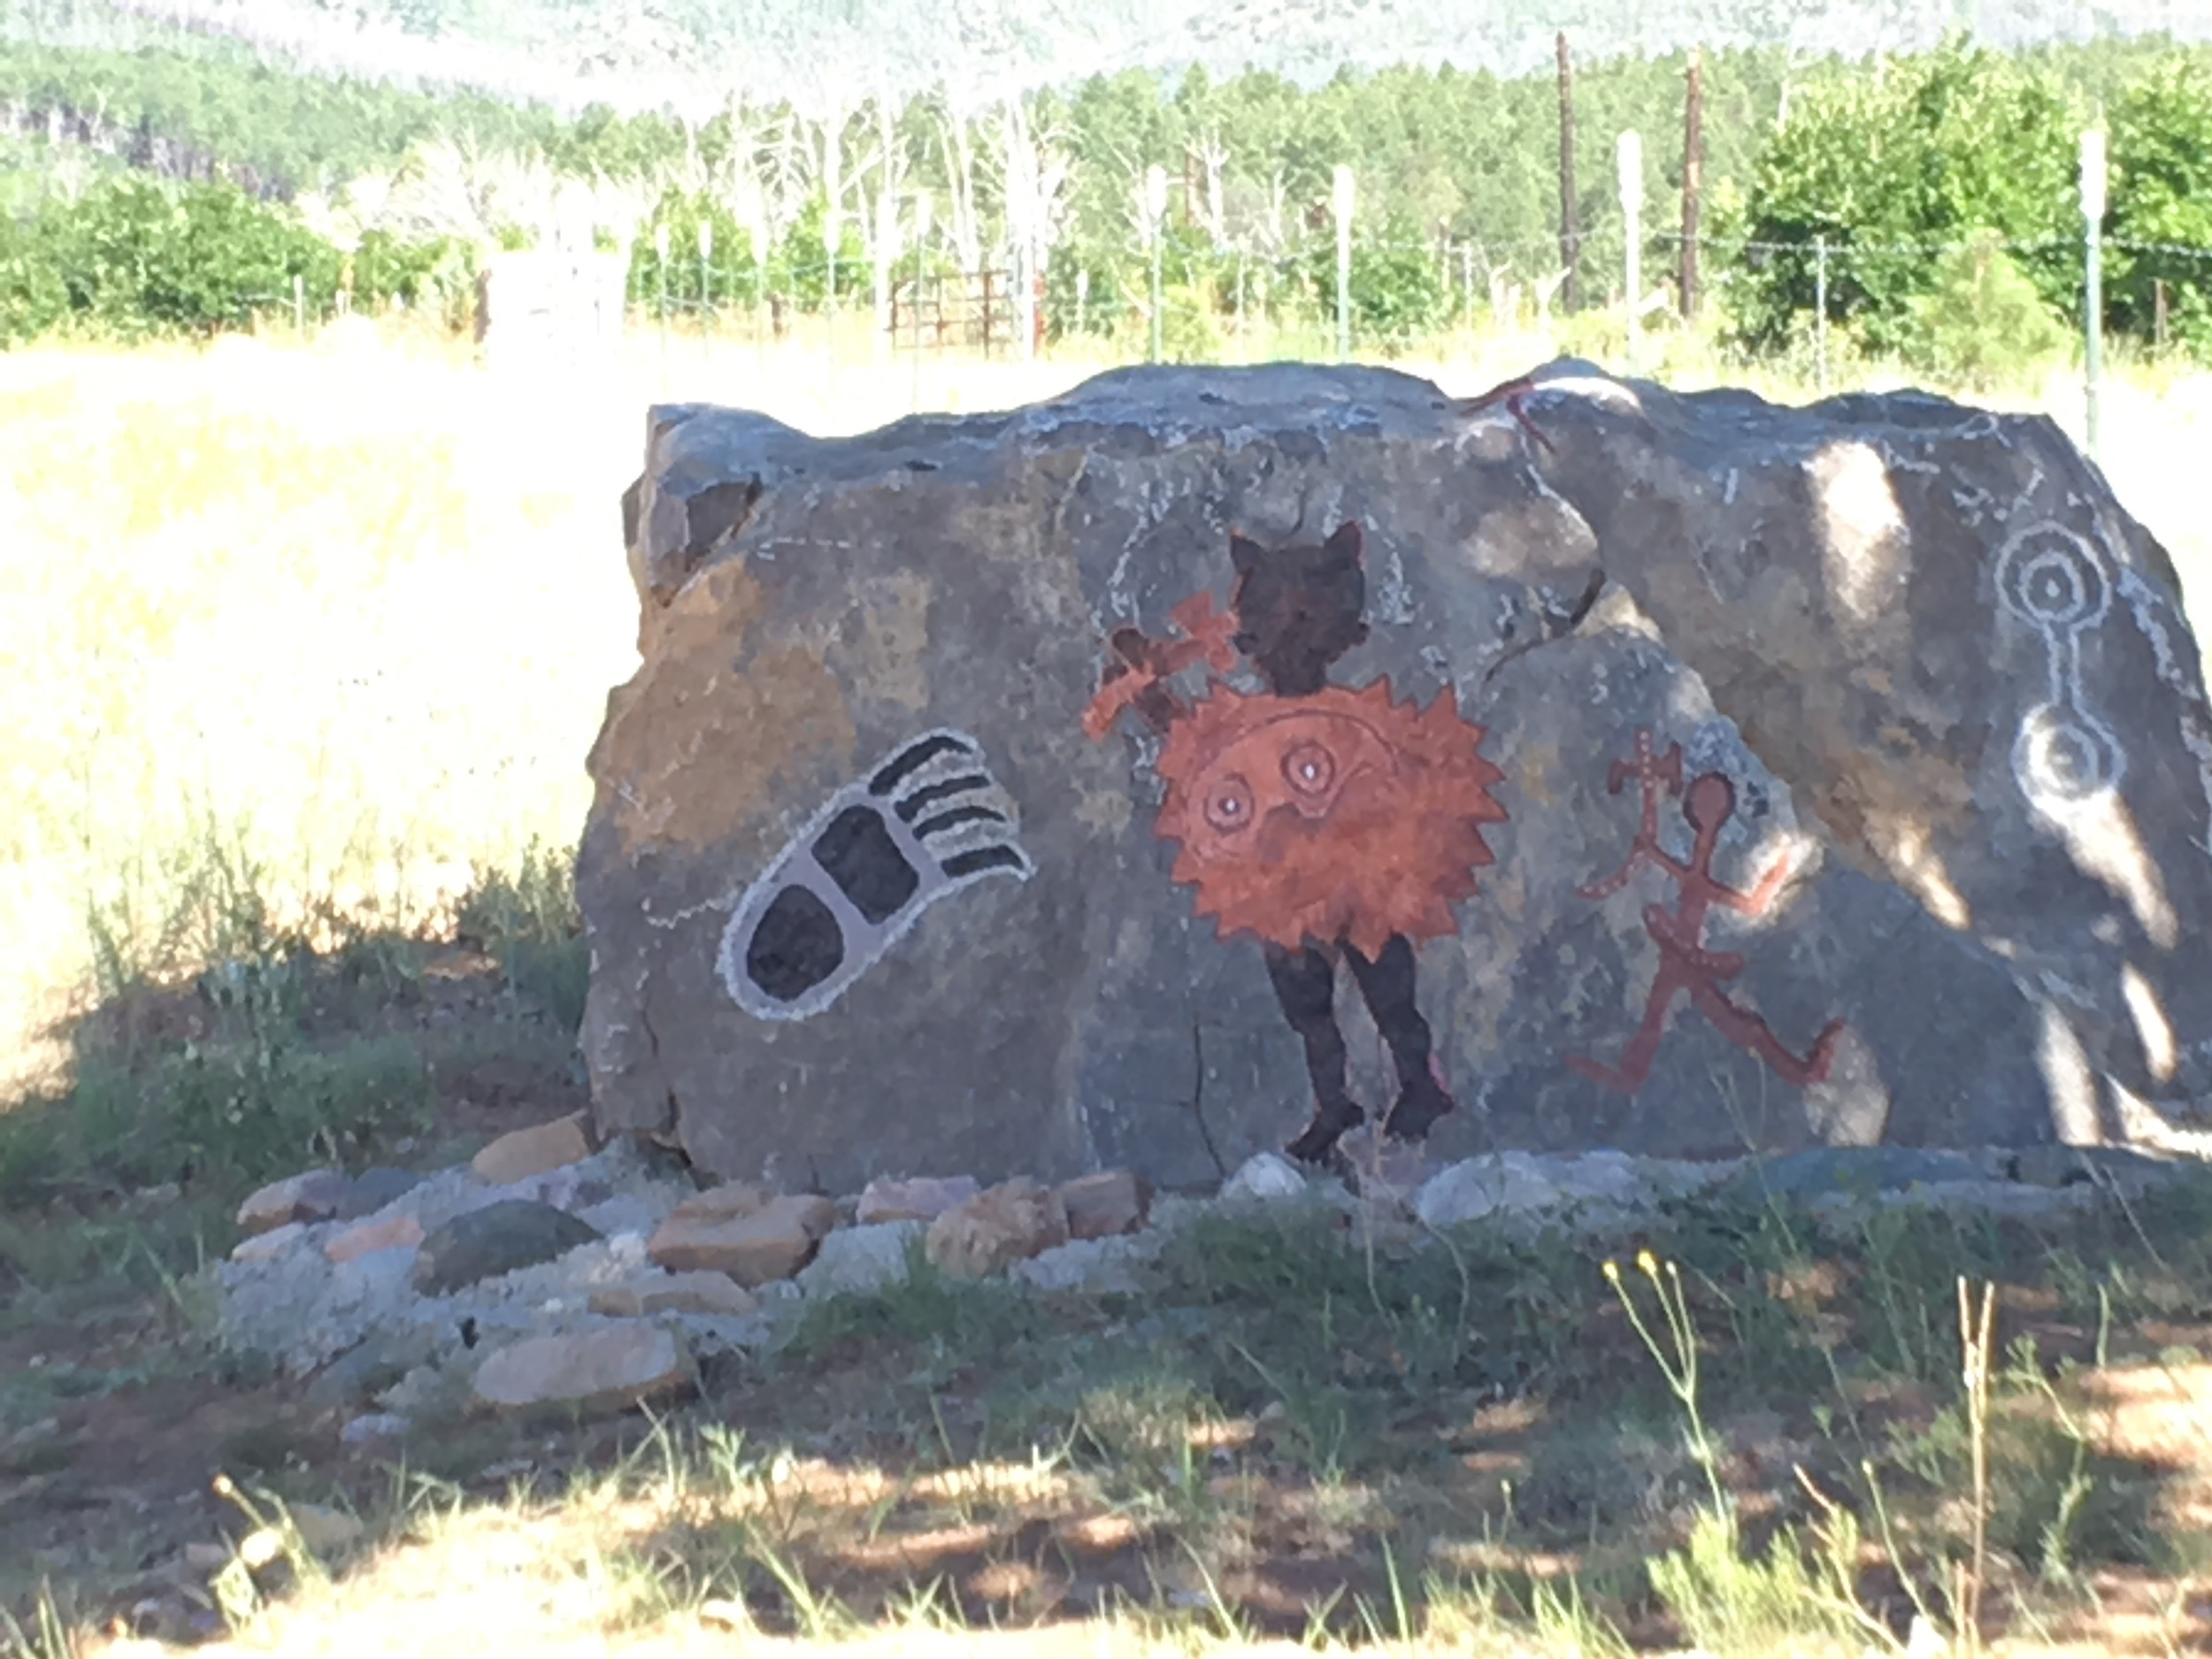 My inner critic at times looks like this petroglyph, (our version at The Camp at Capilla Peak) a hatchet bearing, shield wielding panther woman.